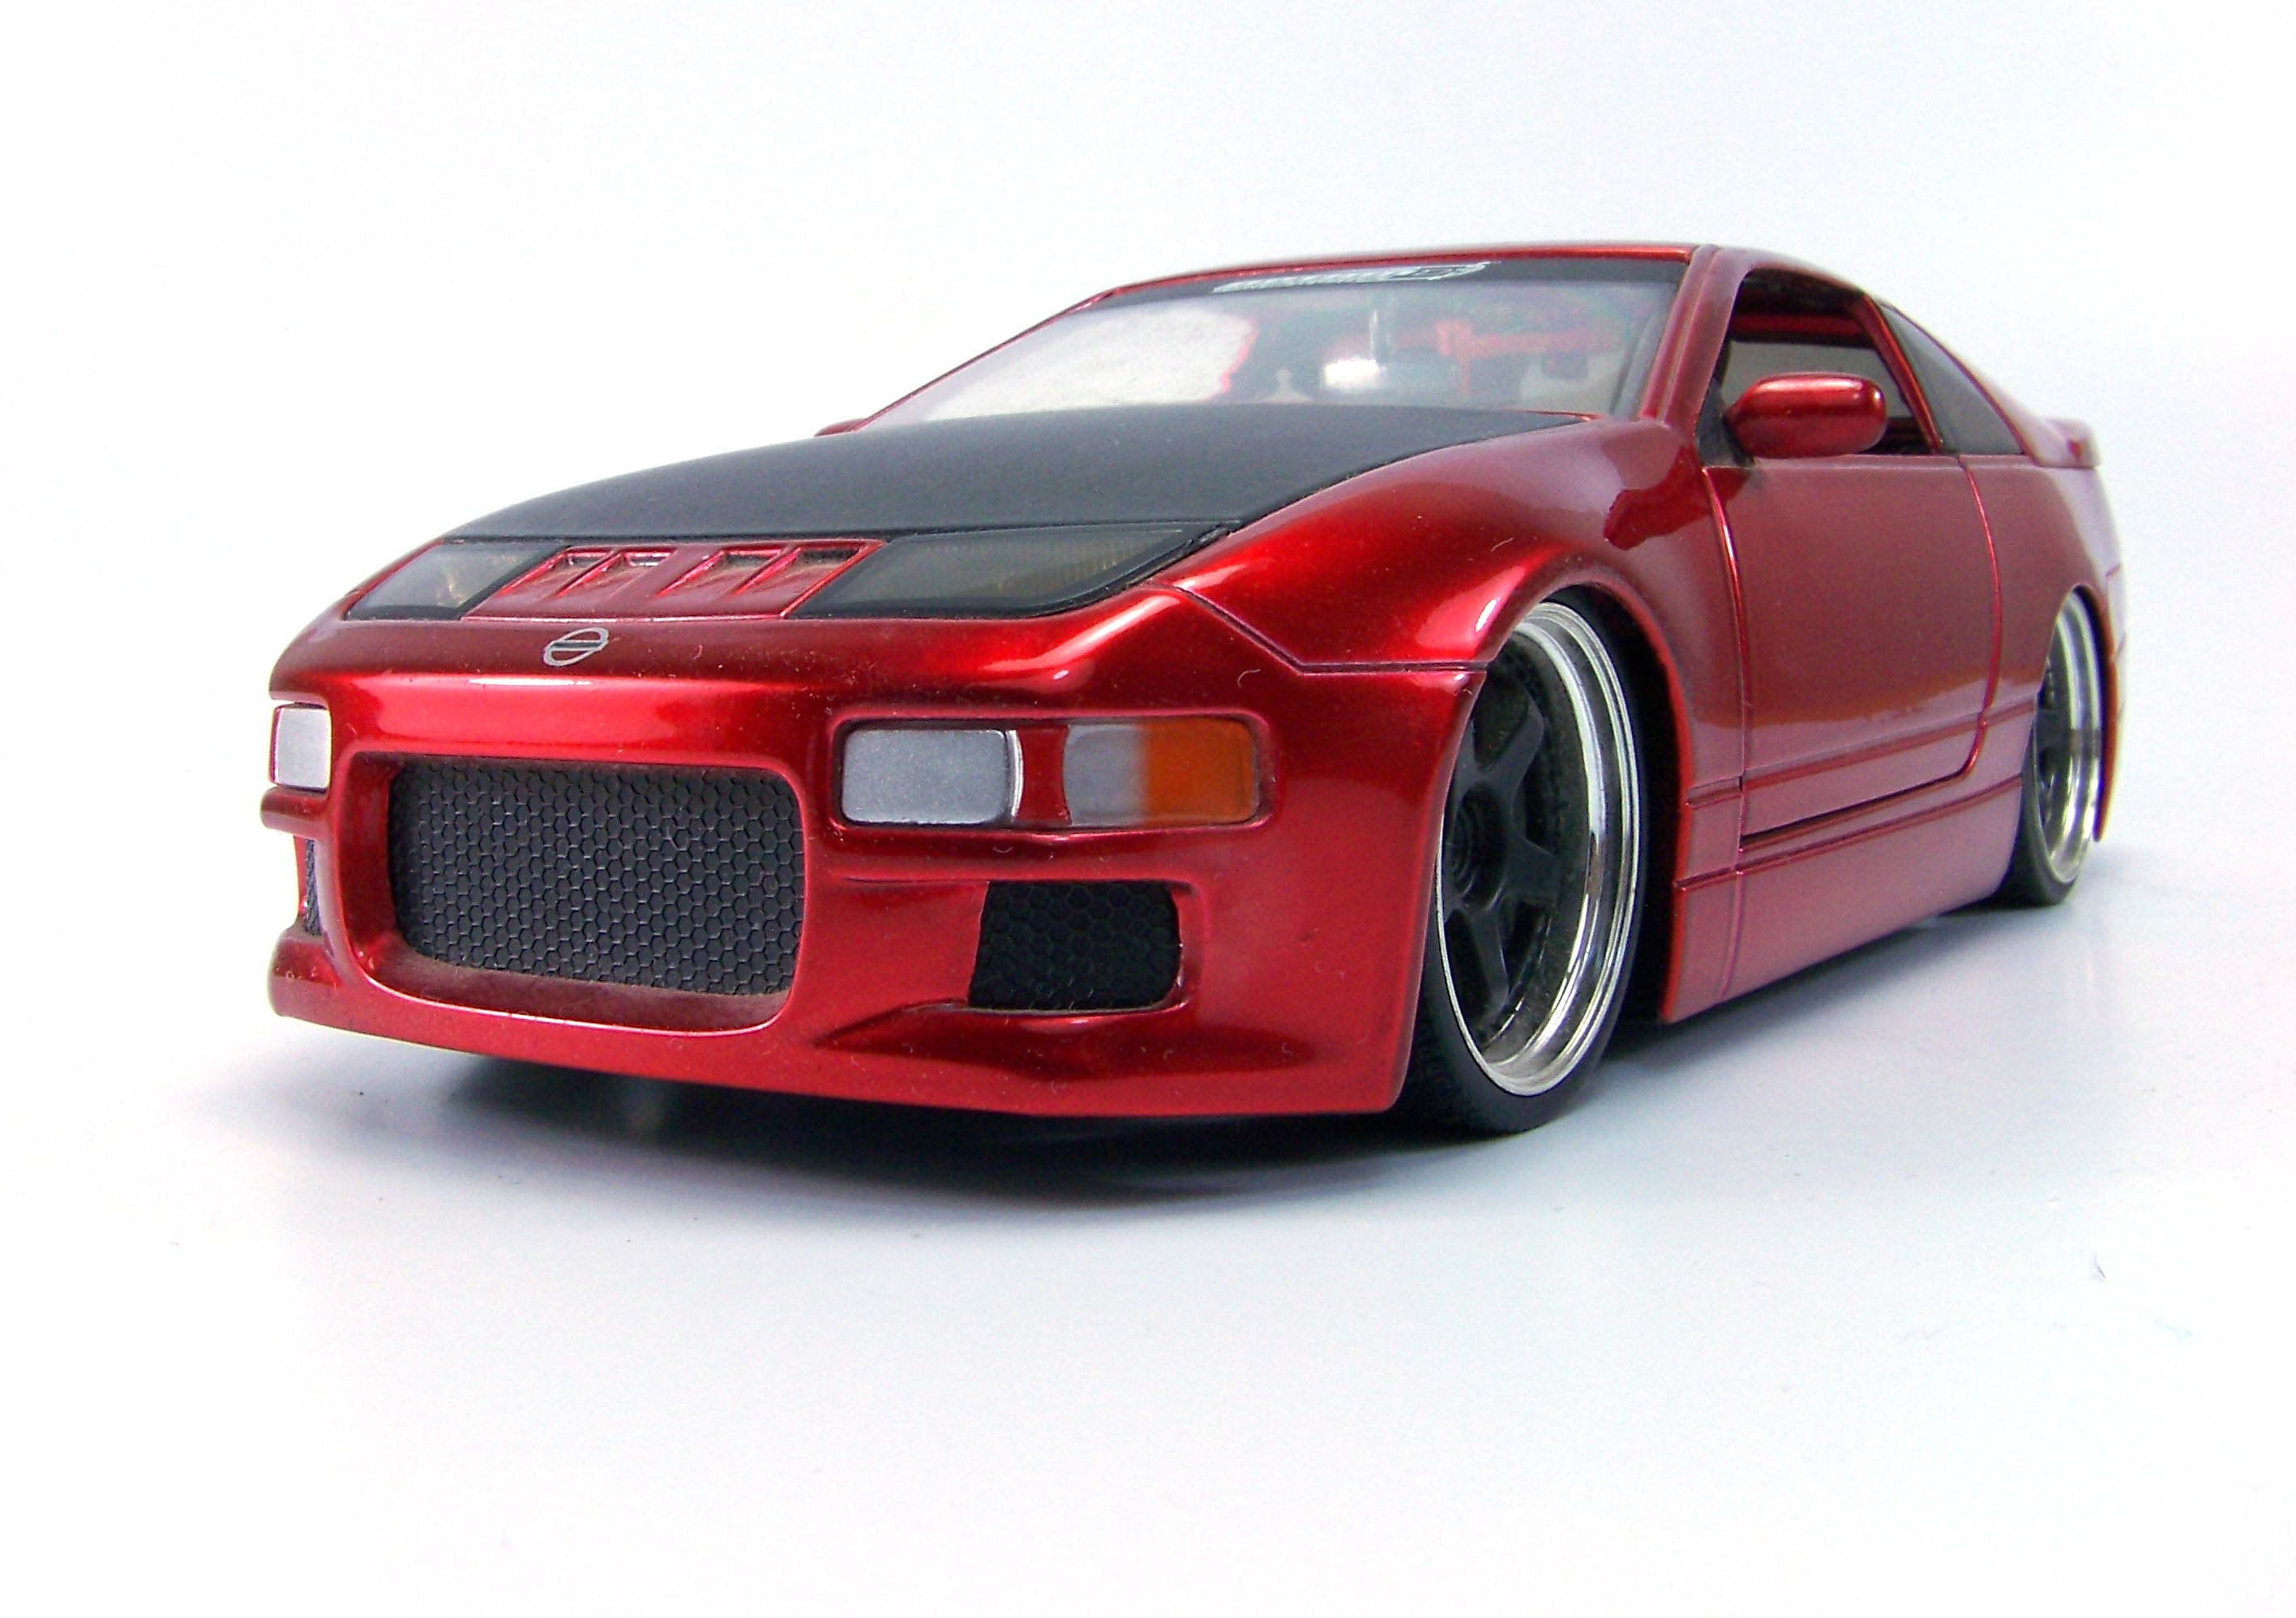 Red toy car, Auto, Sportscar, Race, Red, HQ Photo